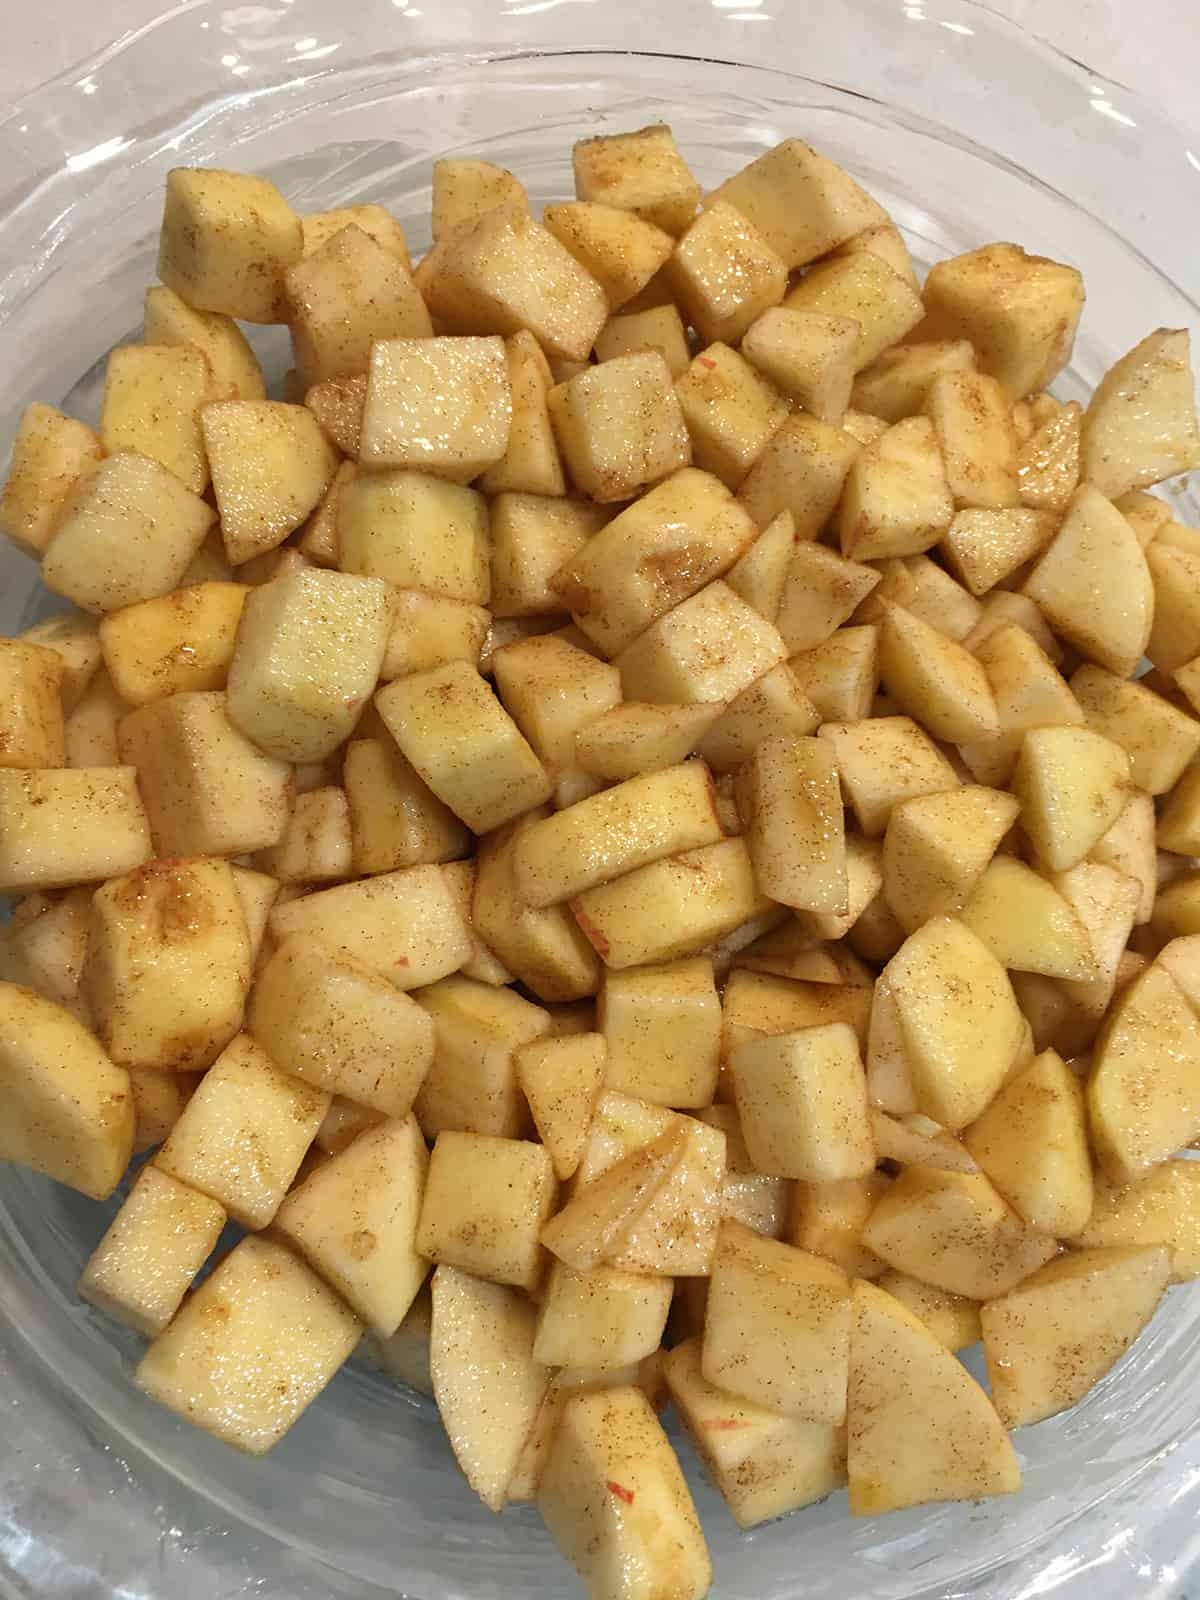 Chopped and prepared apples in a buttered glass baking dish